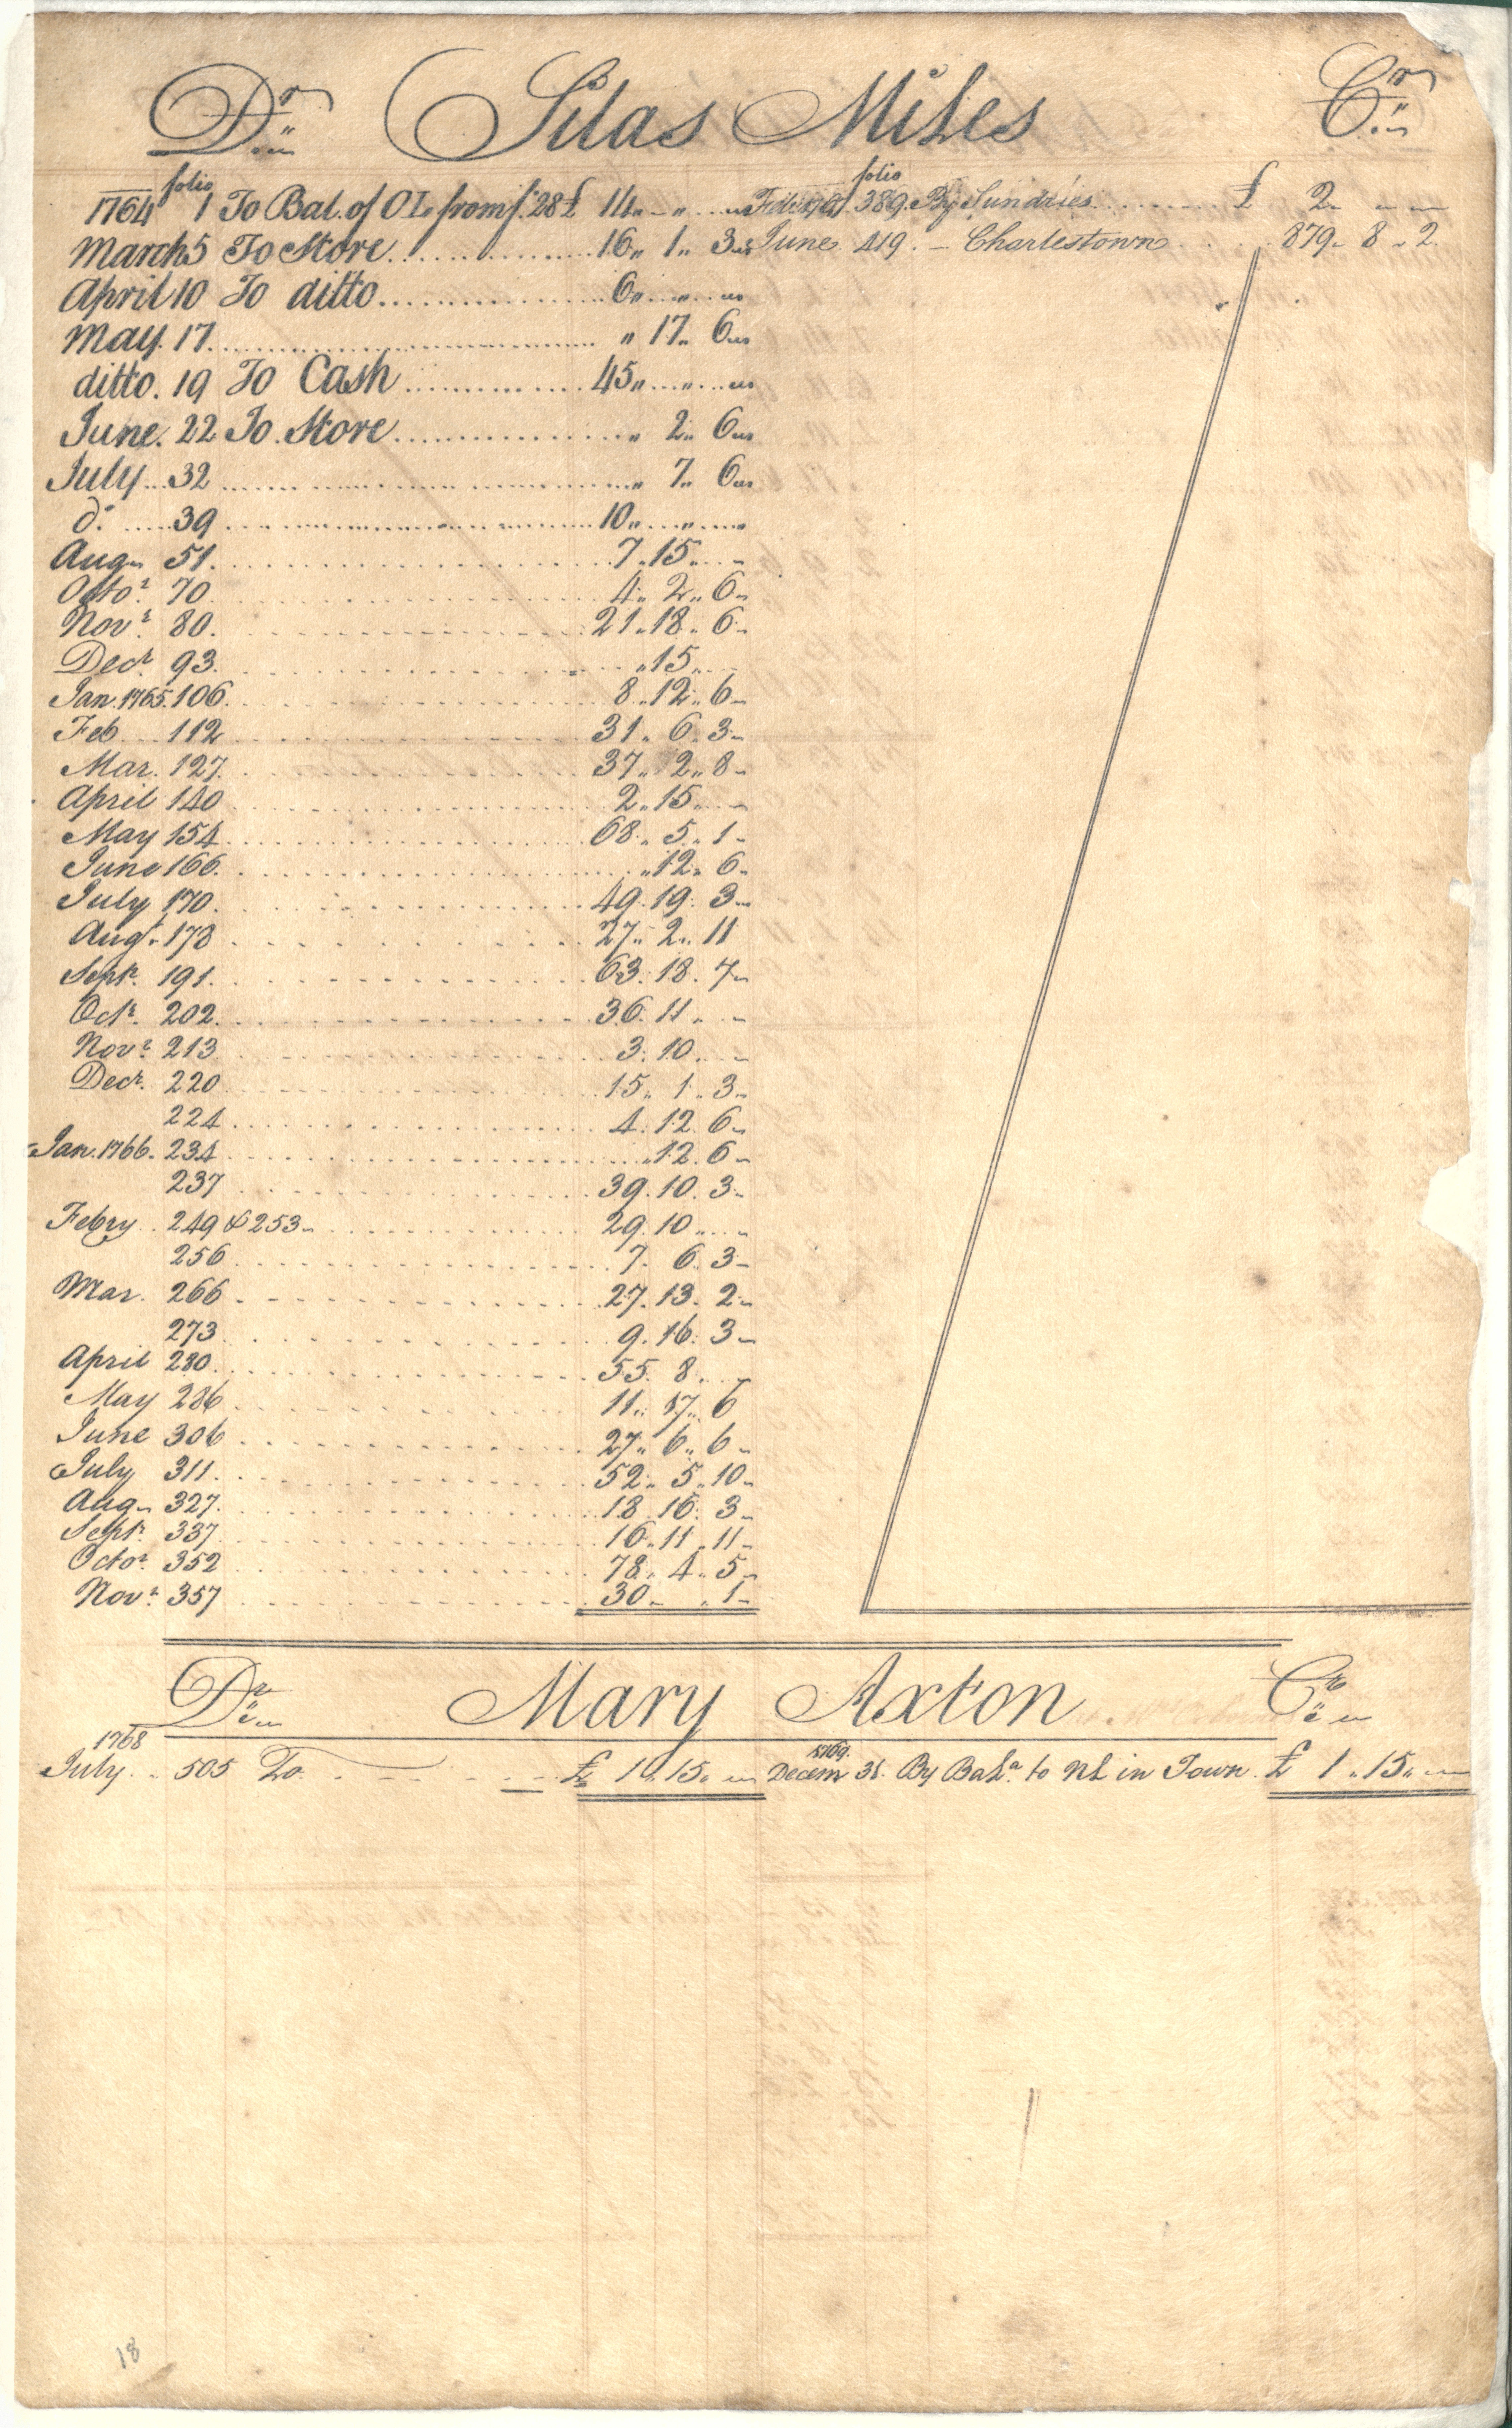 Plowden Weston's Business Ledger, page 60